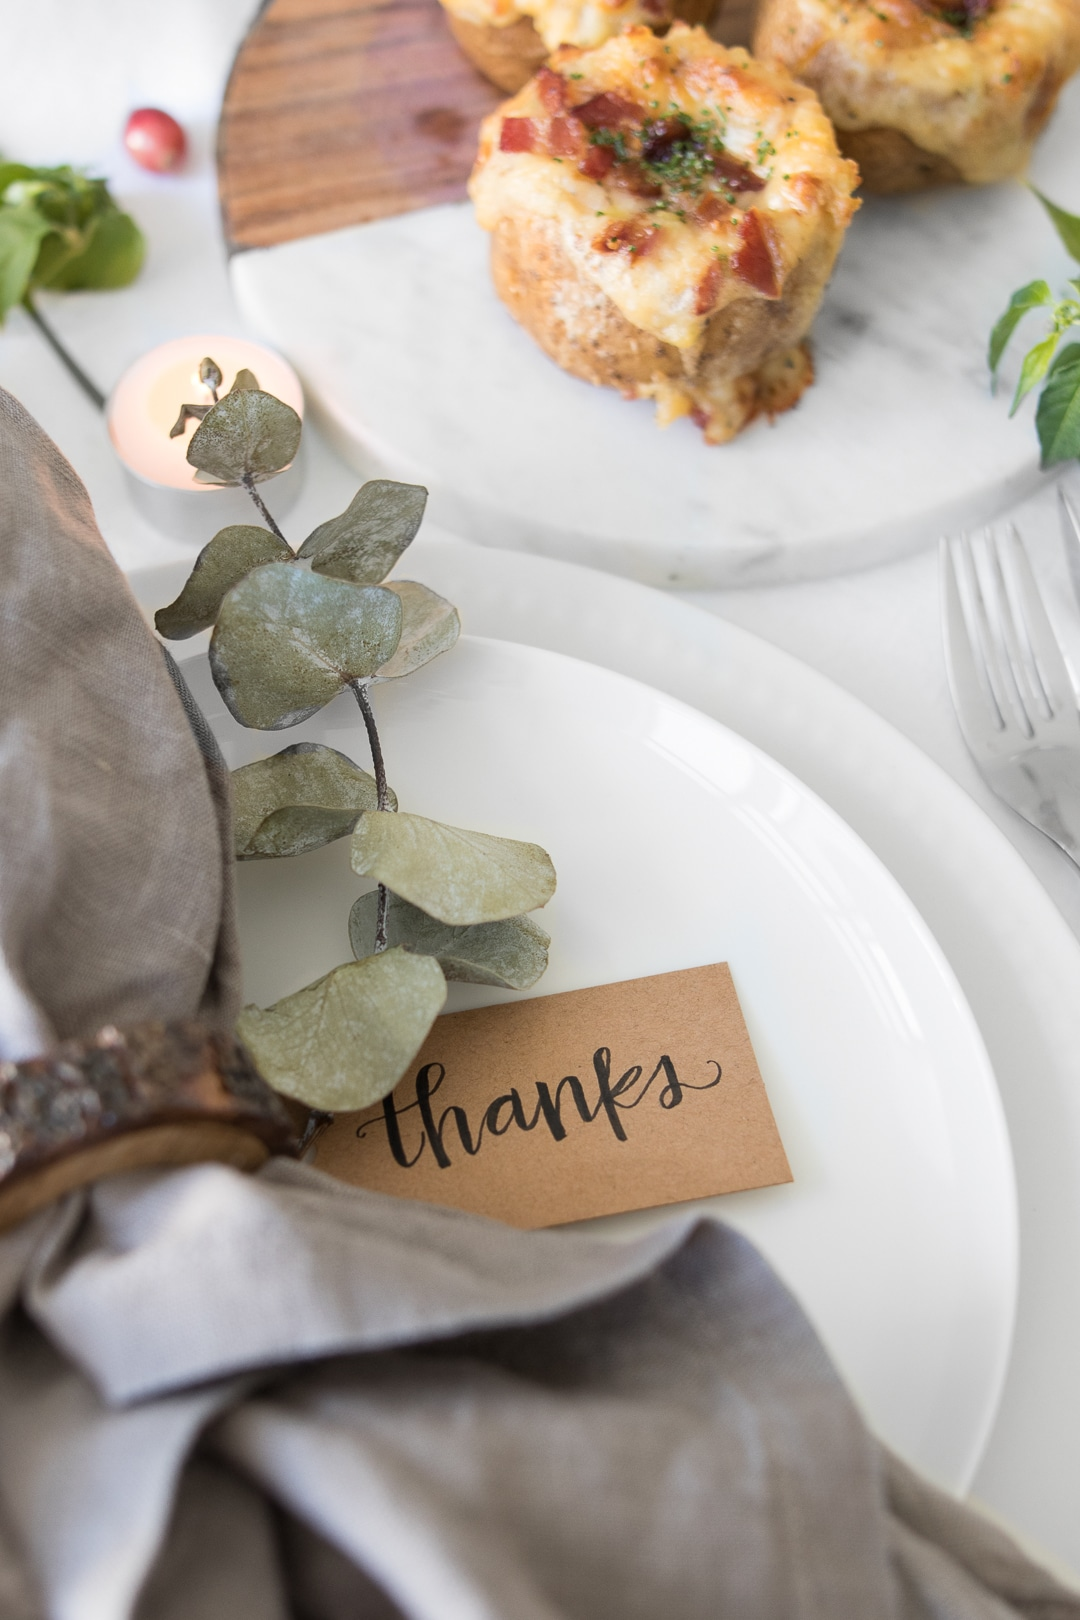 Close up of napkin with Thanksgiving tag and twice baked potato in background